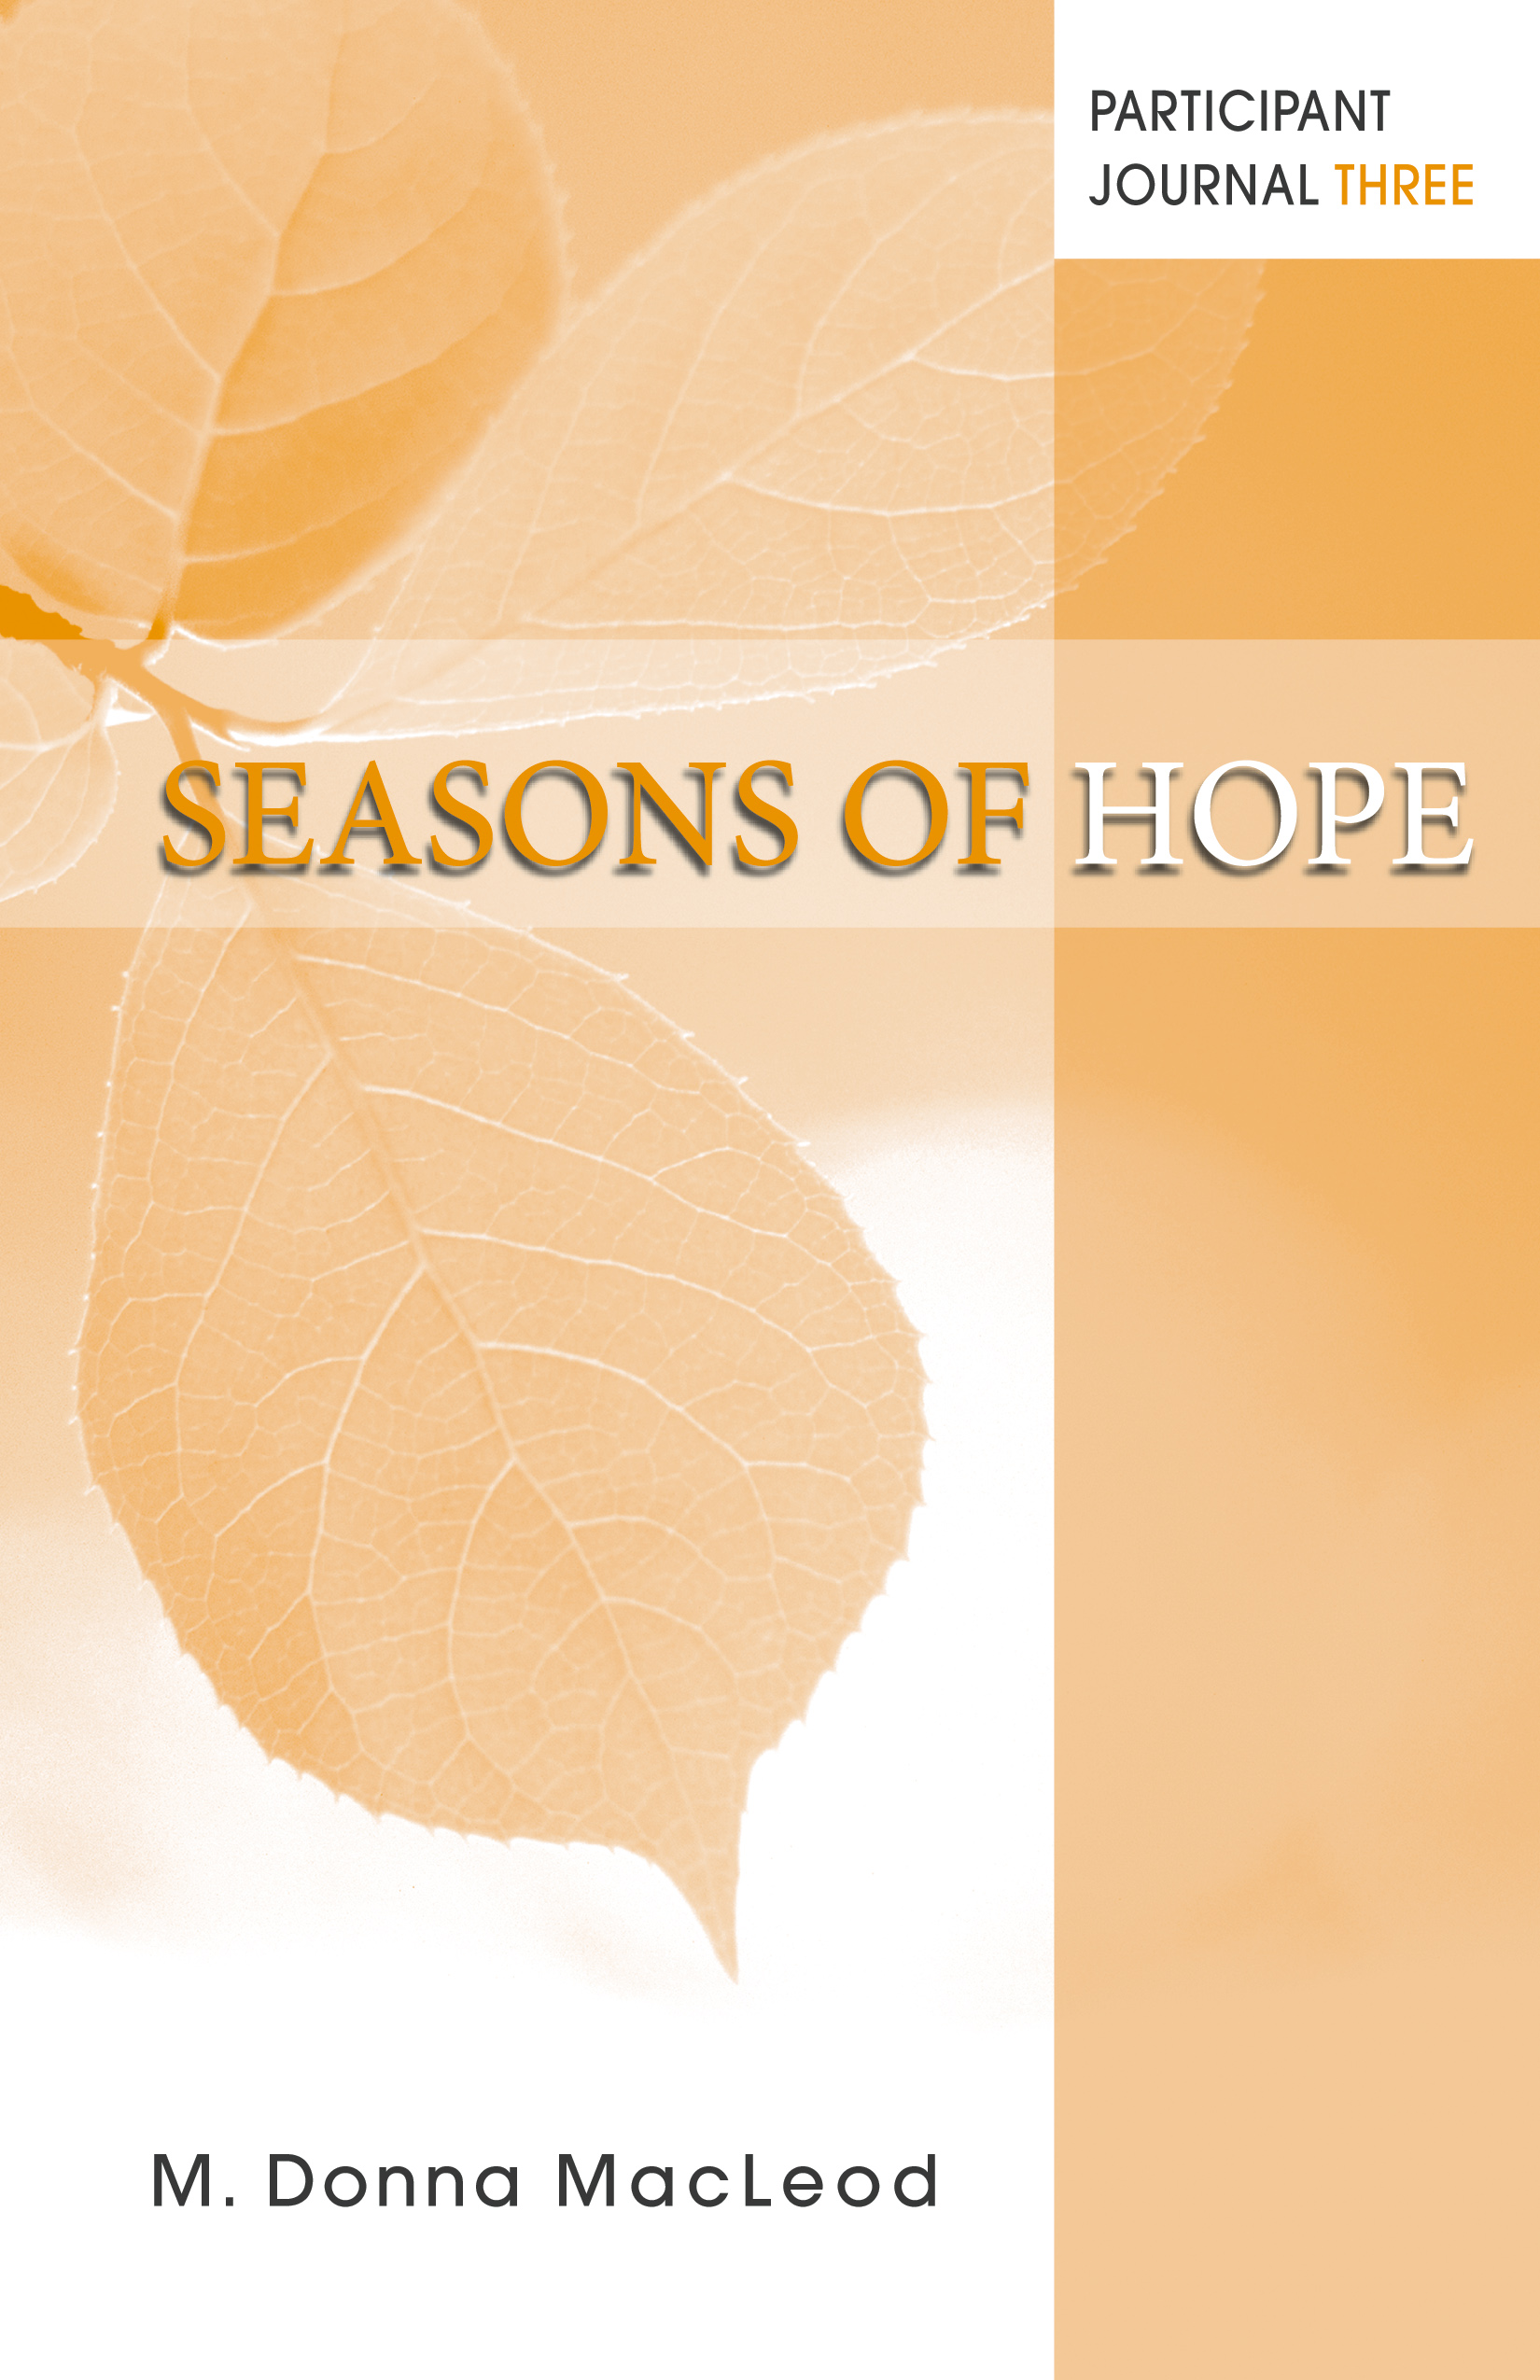 Seasons of Hope Participant Journal 3